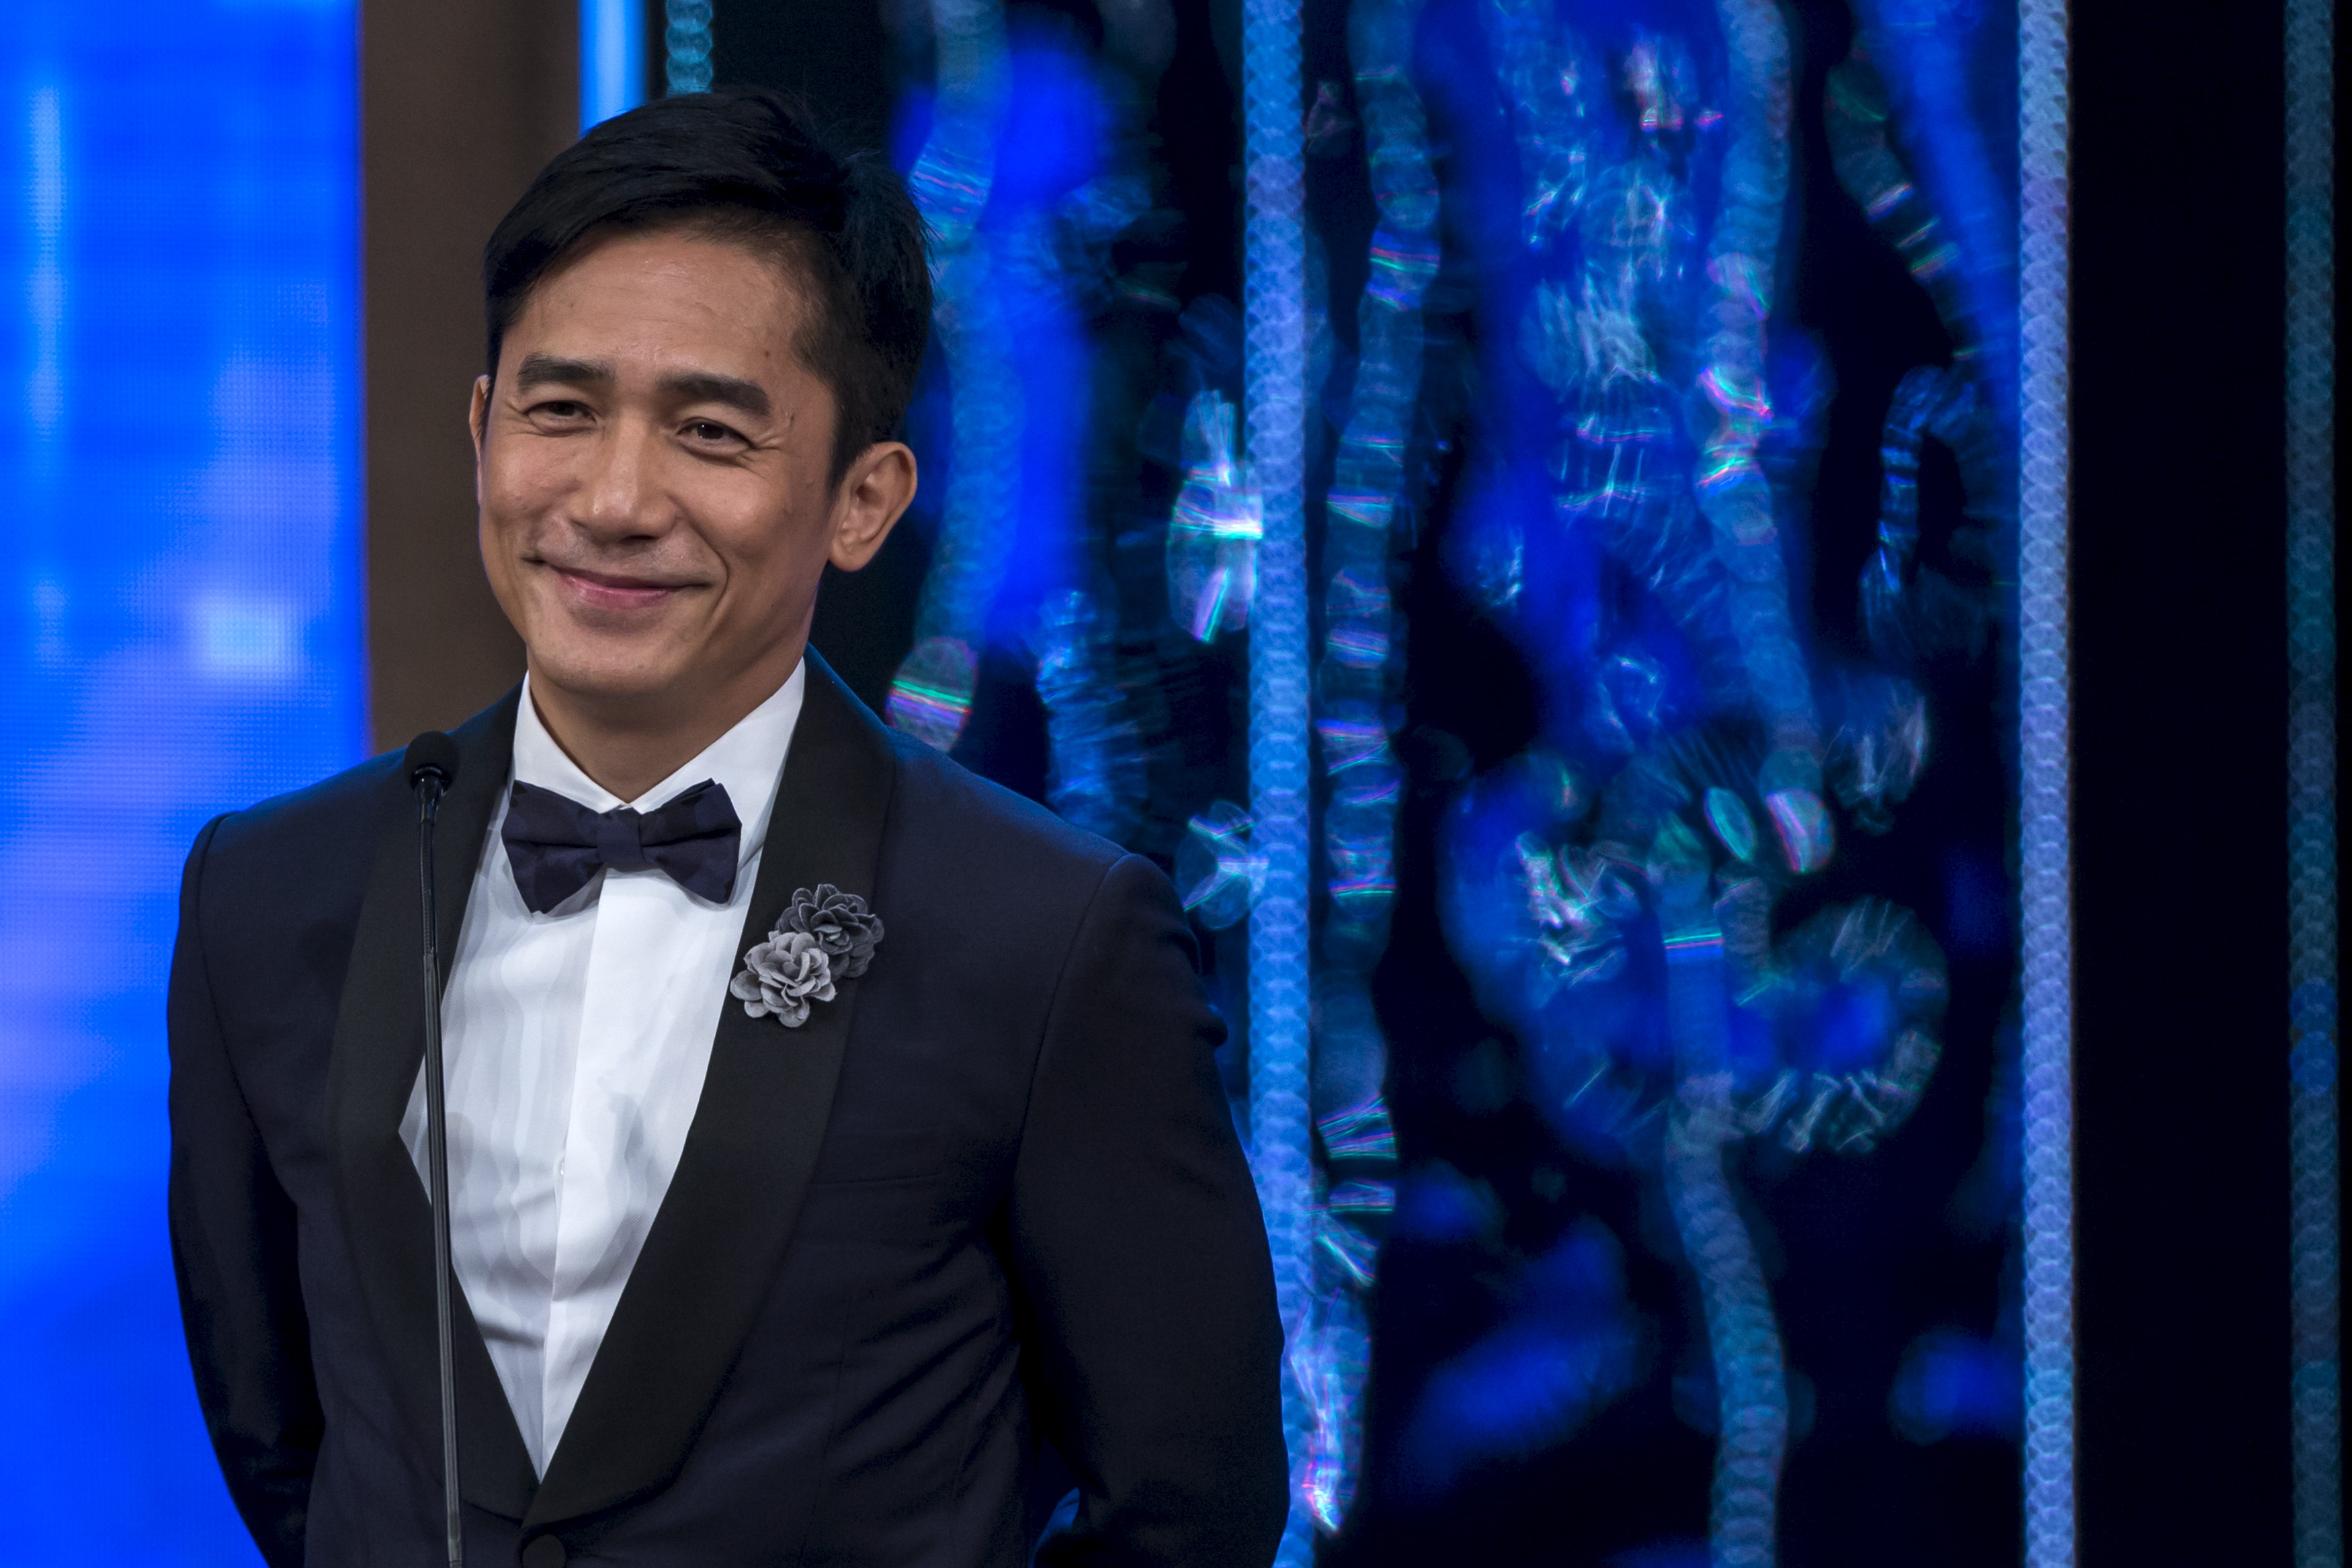 Hong Kong actor Tony Leung will play Marvel's Mandarin